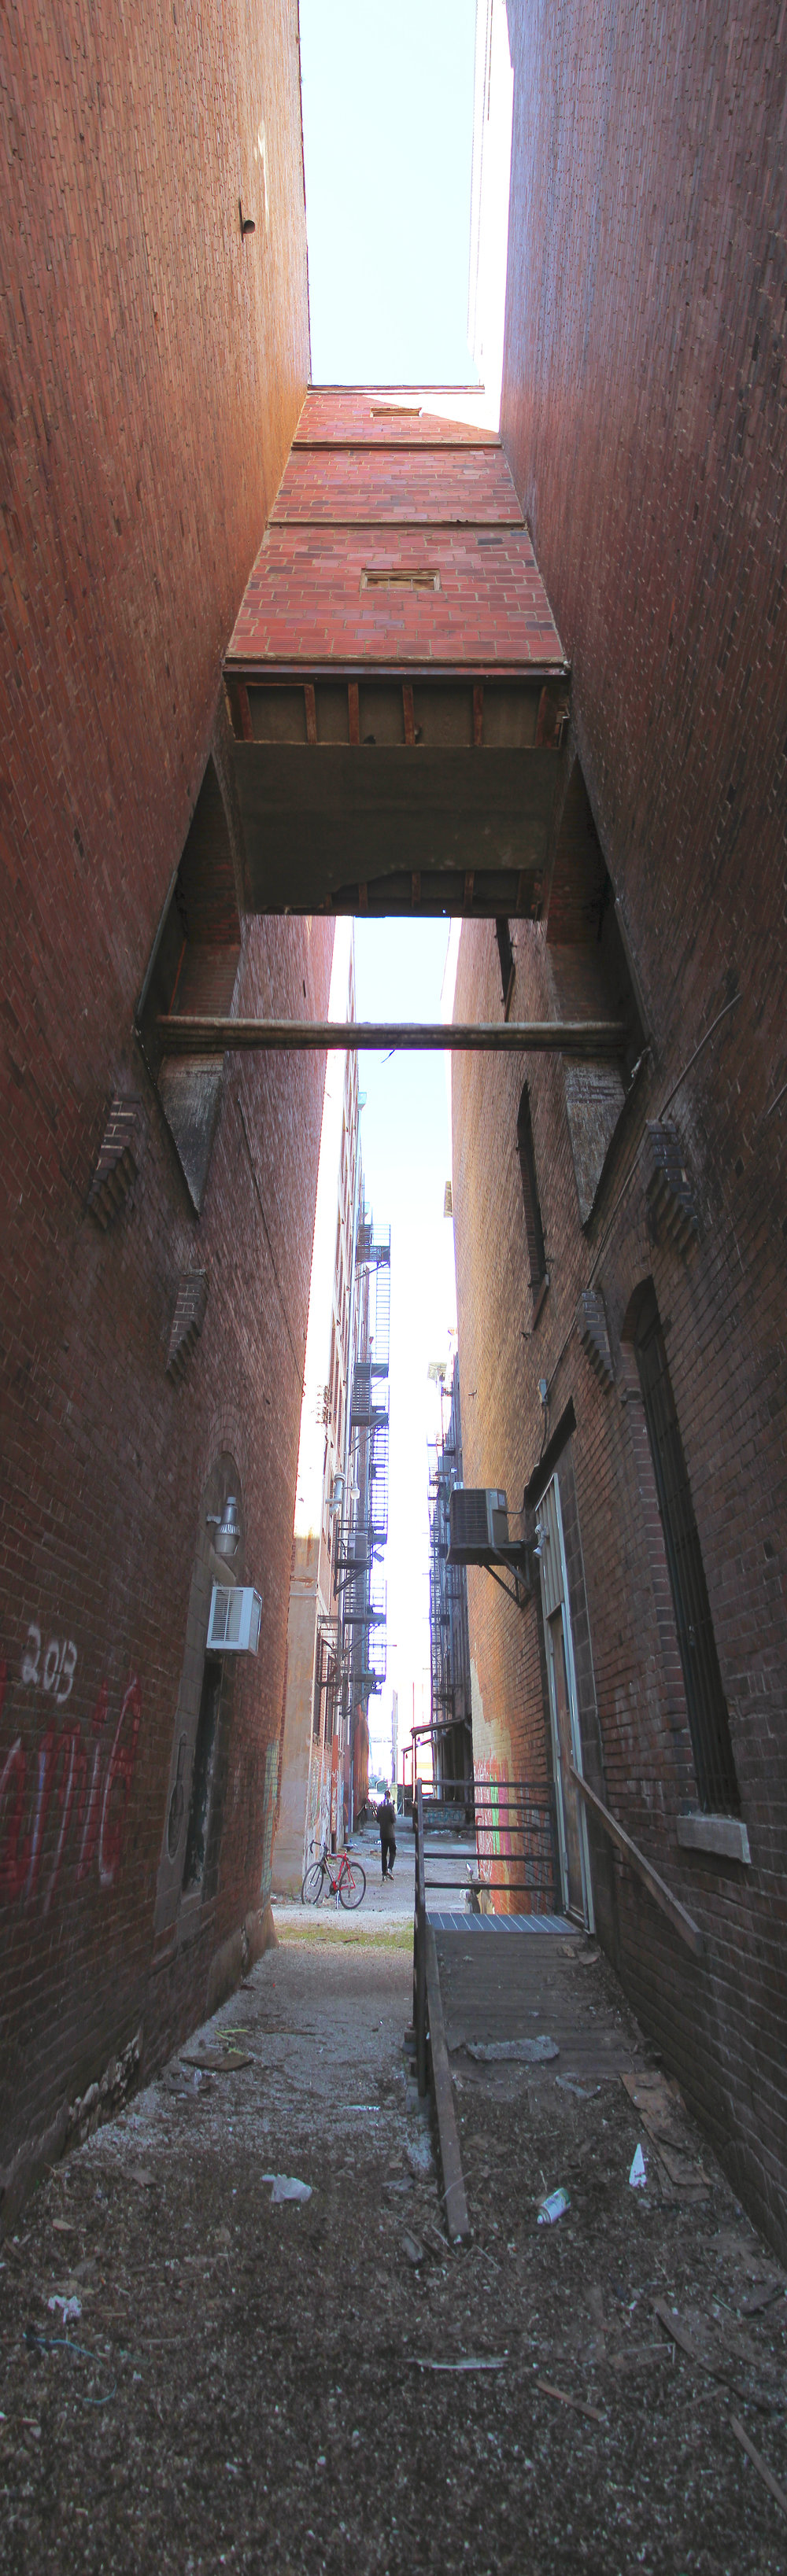 Pano 1 - Alley Enclosure.jpg